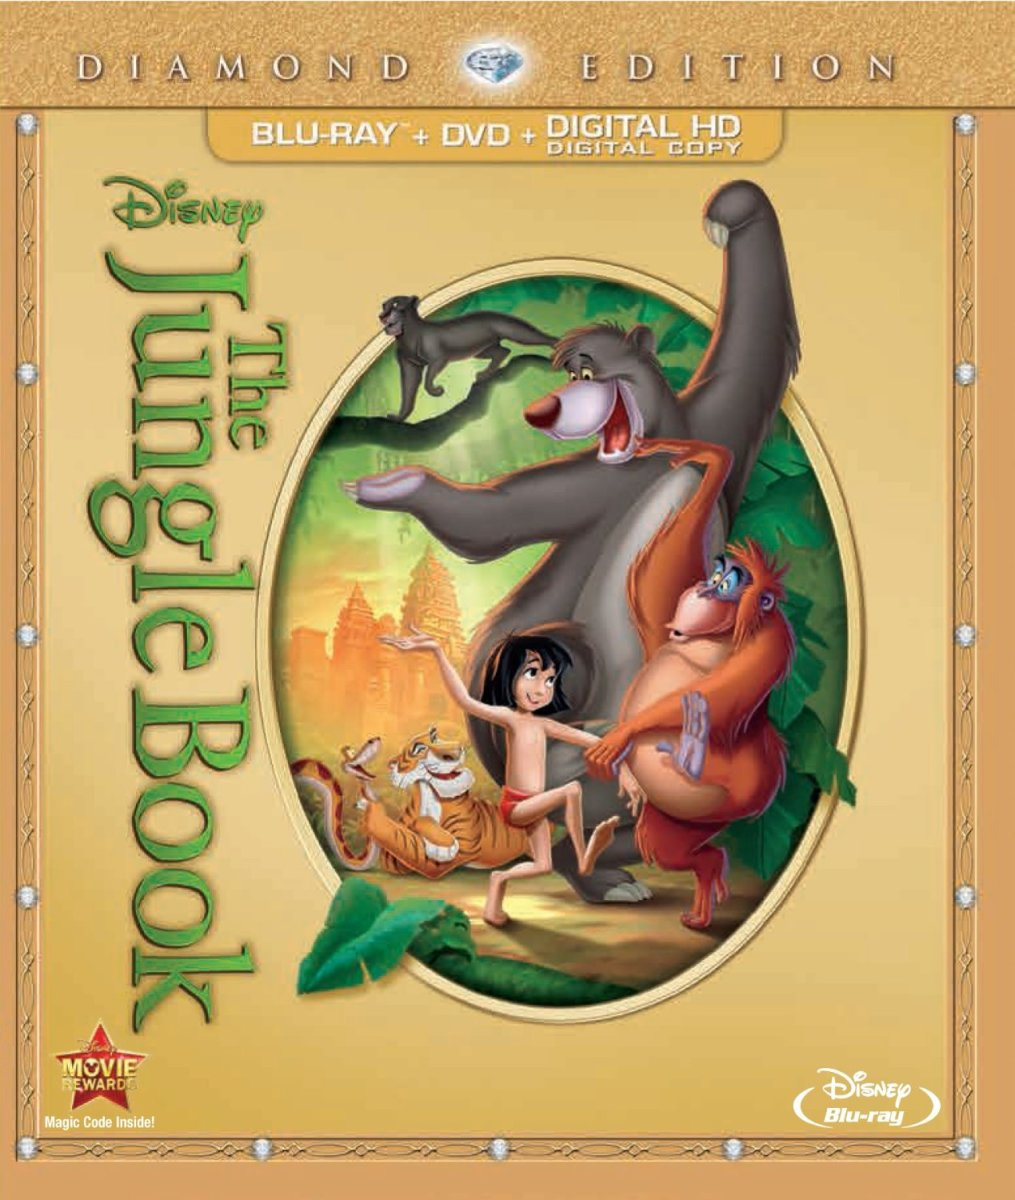 The Jungle Book on Blu-ray and DVD.